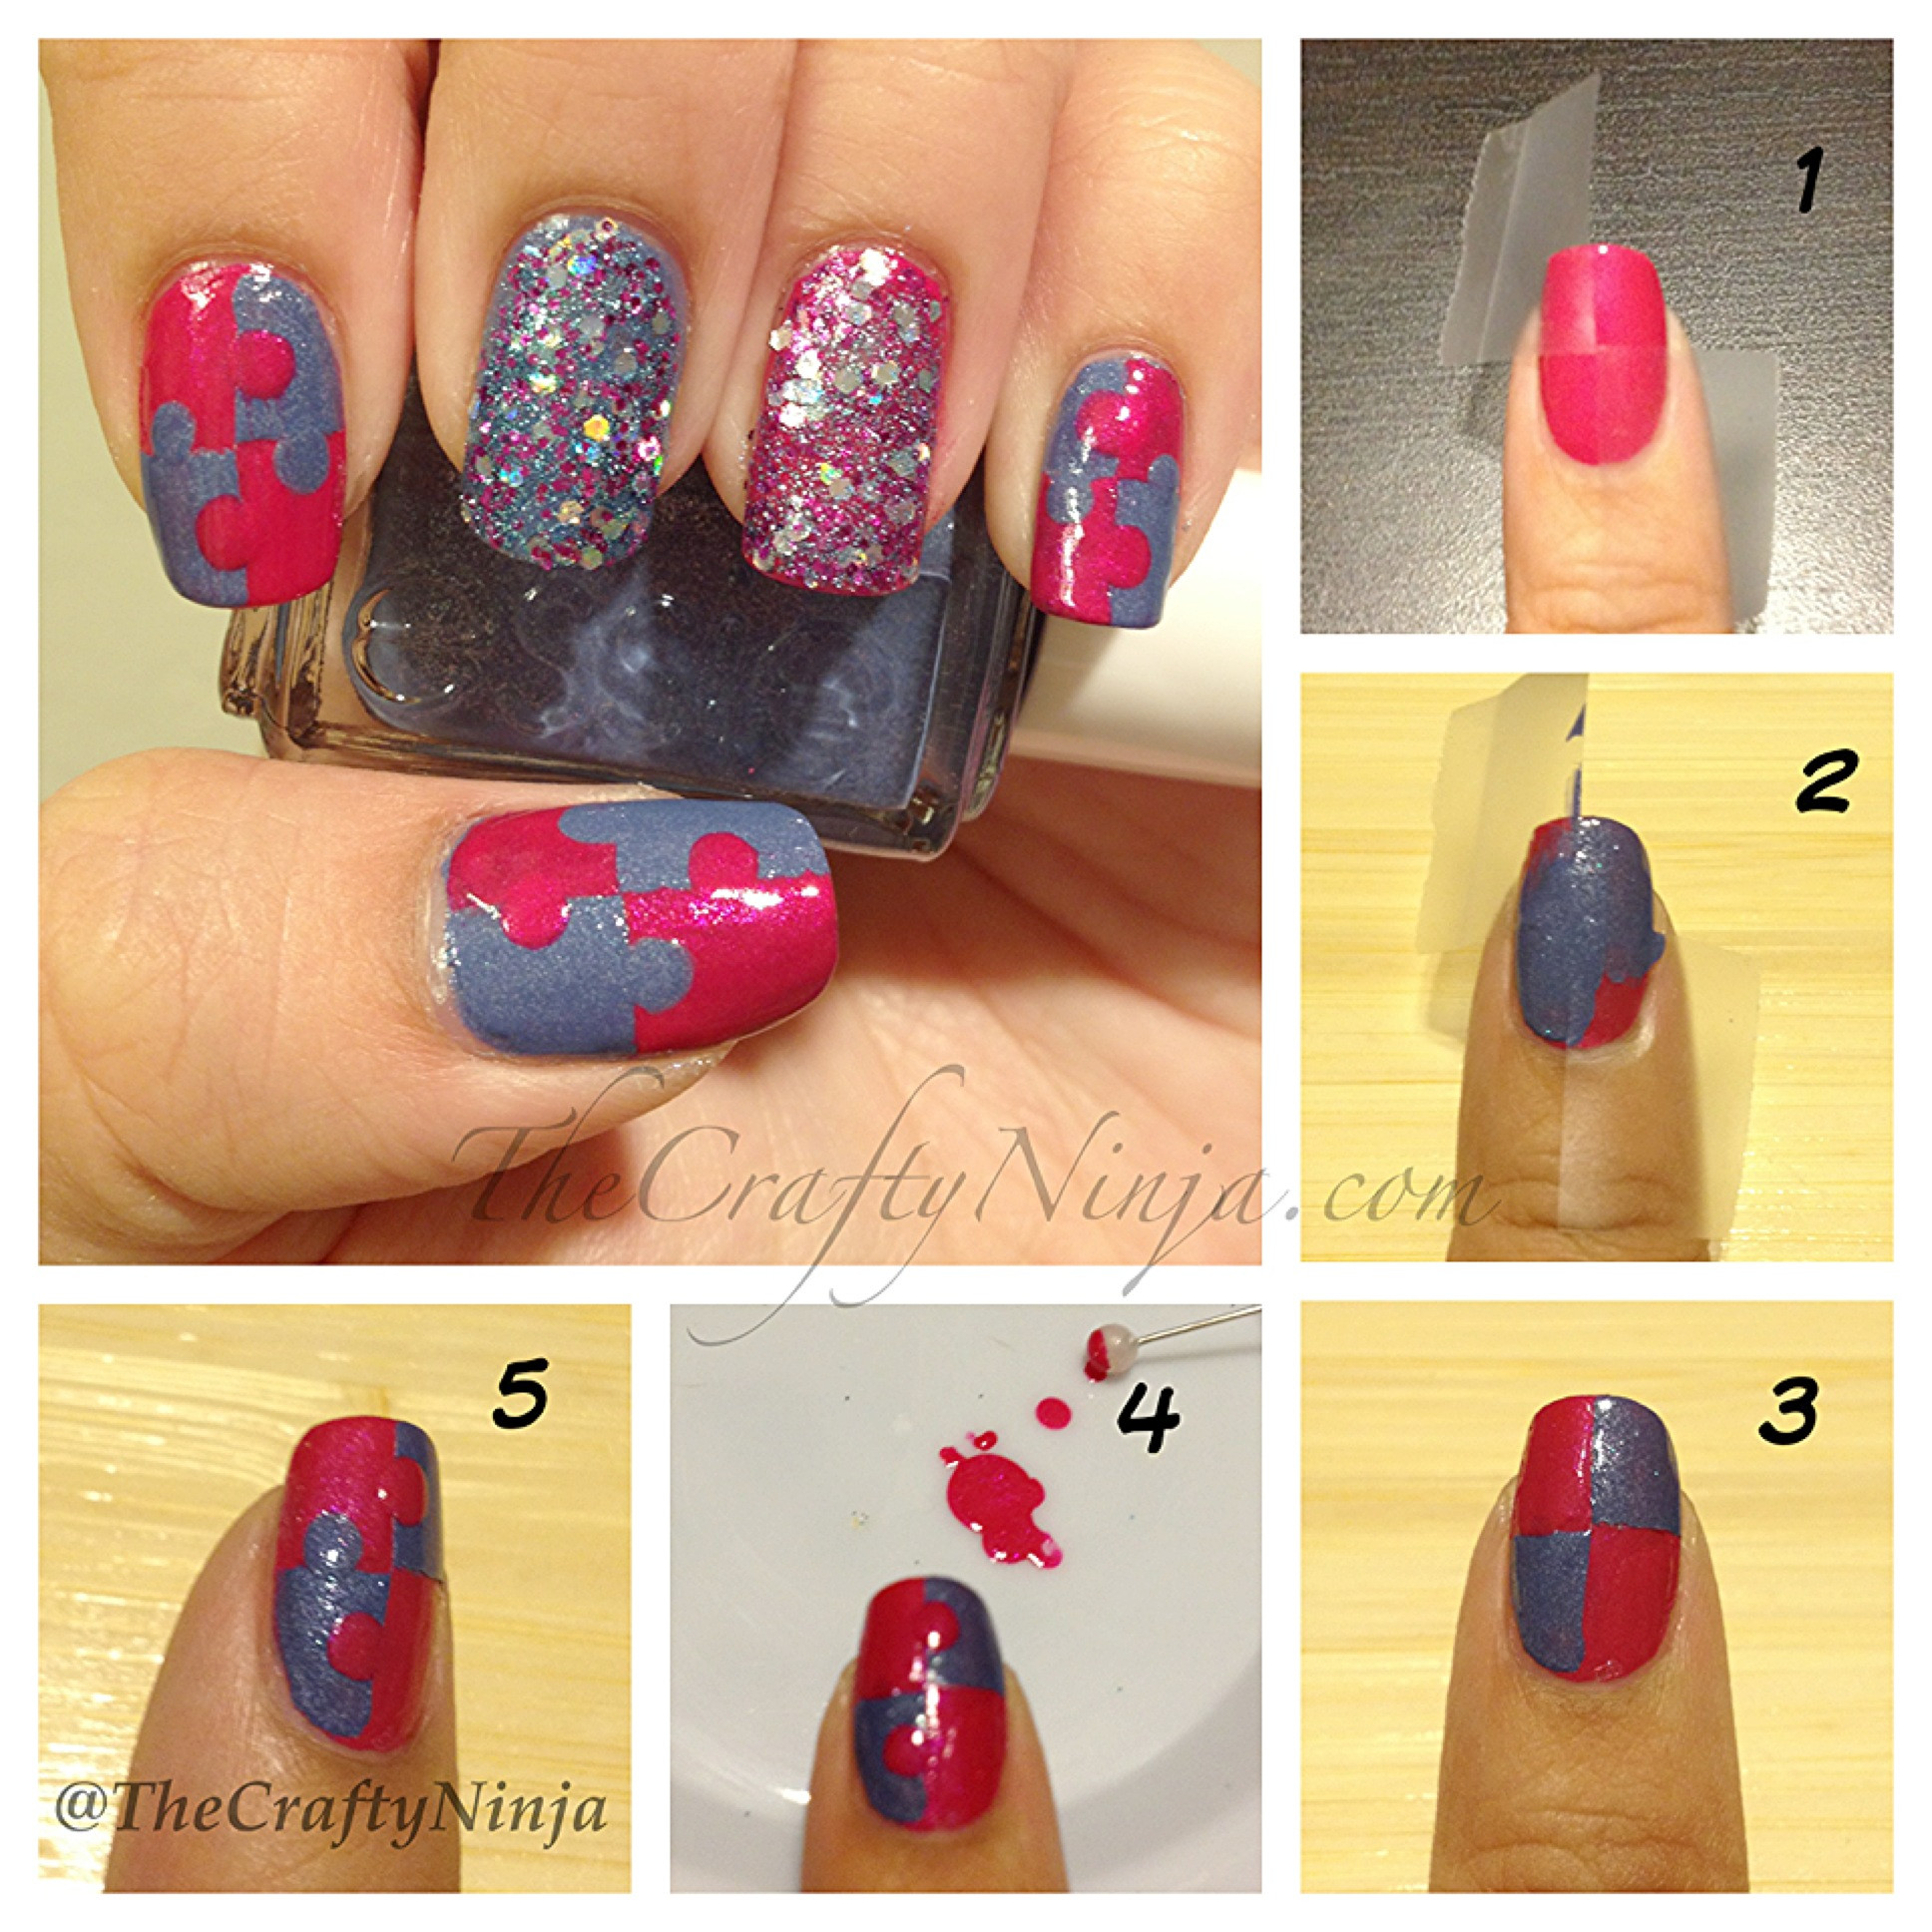 Best ideas about DIY Nail Art . Save or Pin 12 Amazing DIY Nail Art Designs Now.